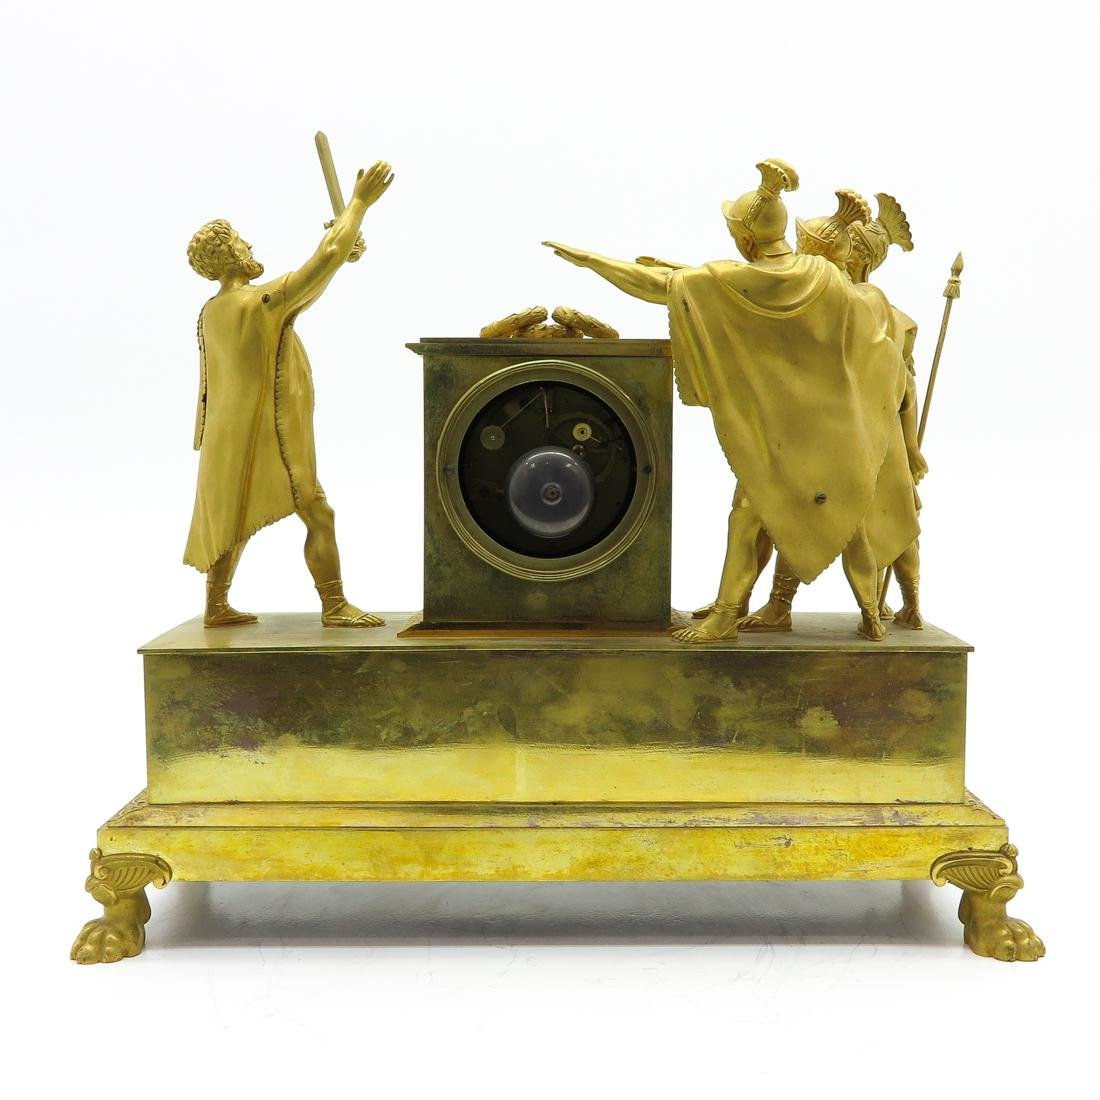 French Pendule Ca. 1800 Depicting The Oath of Horatius - 3